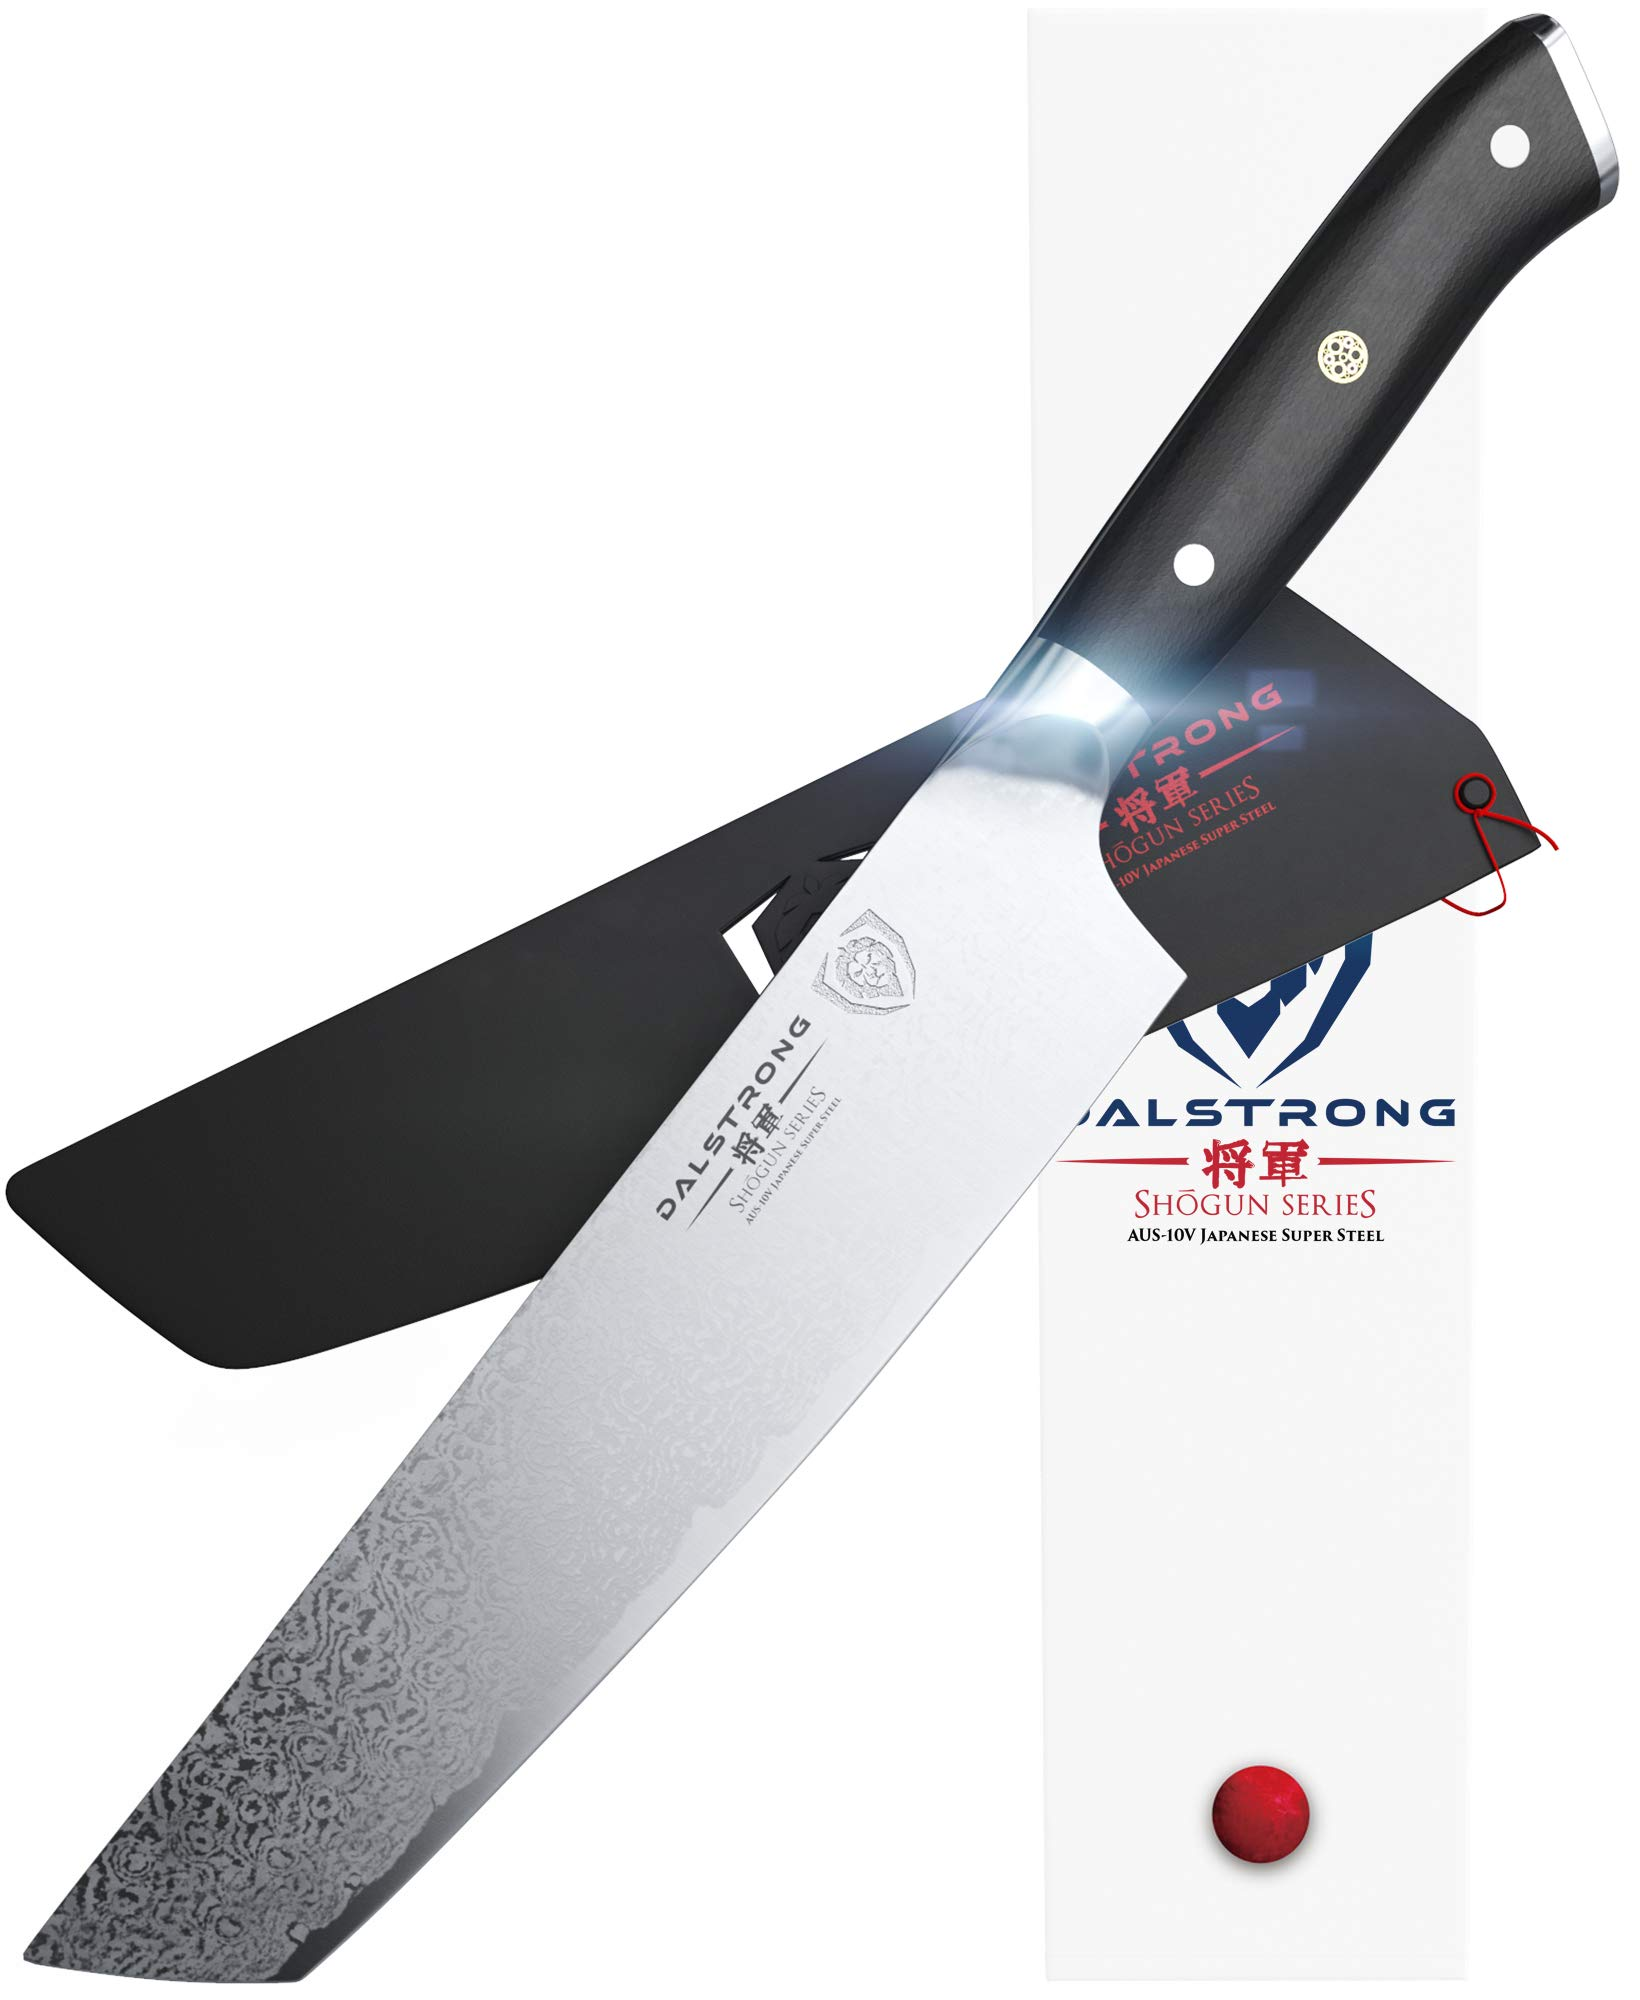 DALSTRONG'' The Tanto'' Chef Knife - Shogun Series - Japanese AUS-10V Super Steel - 8'' - w/Sheath by Dalstrong